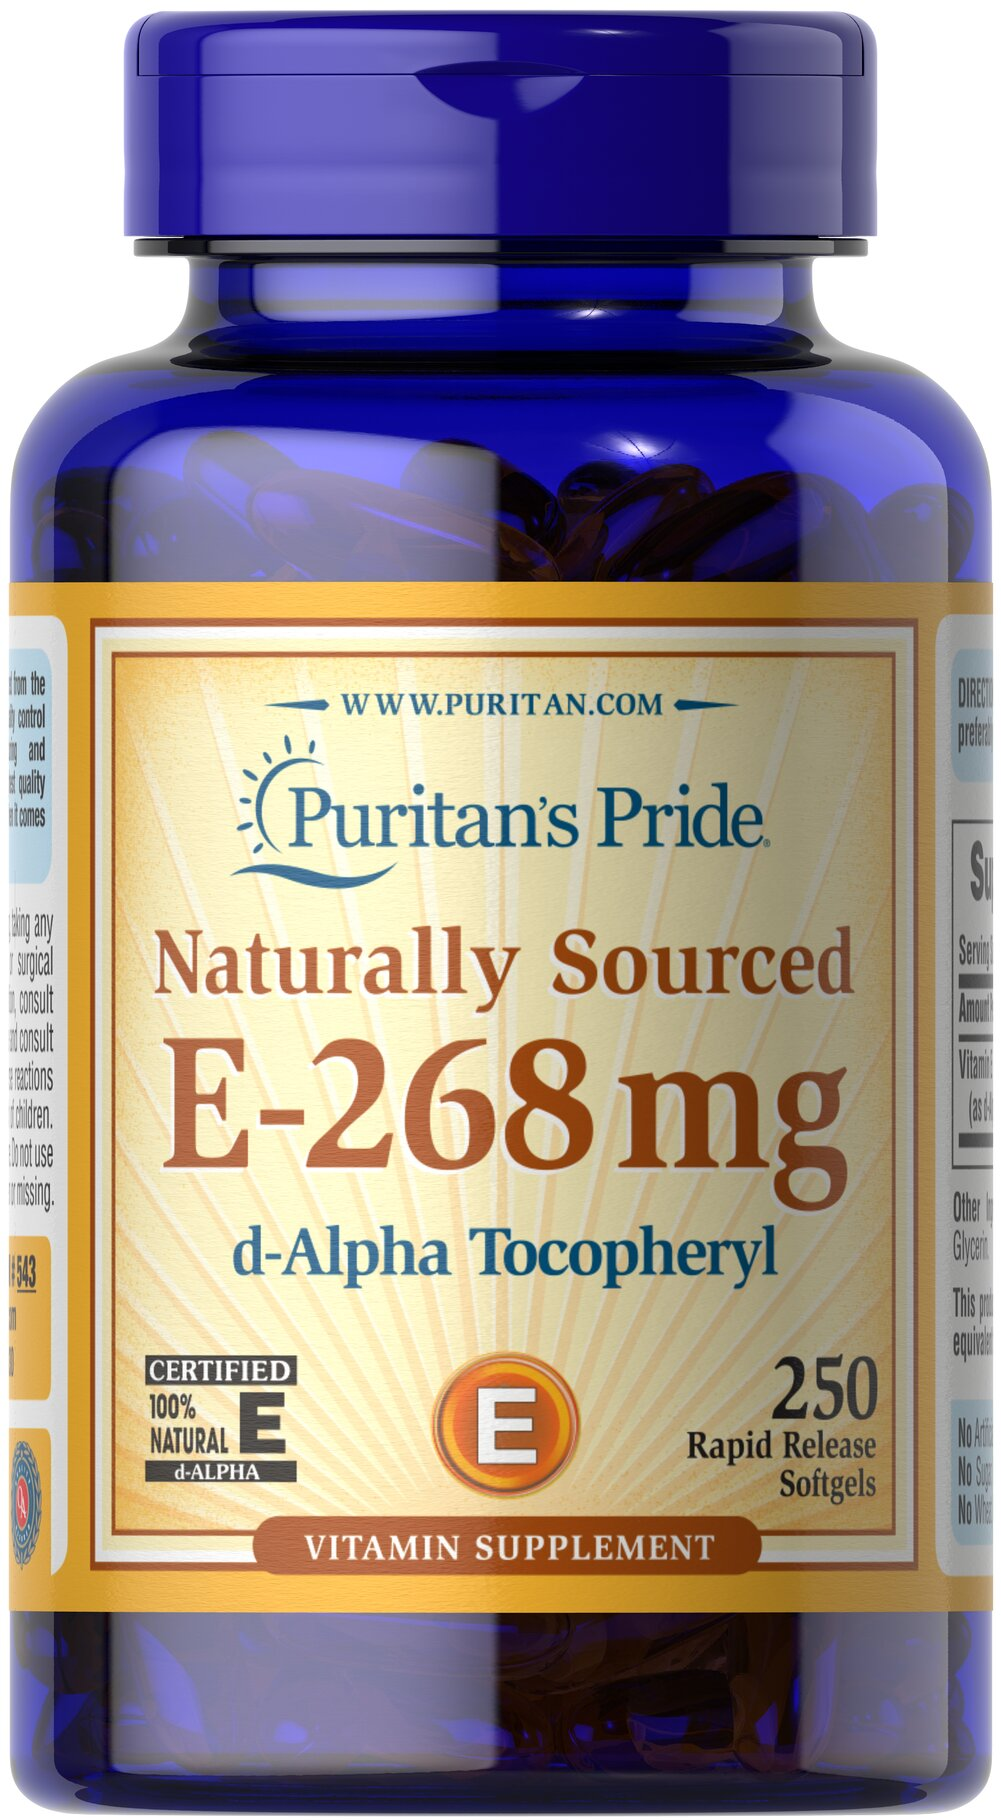 Vitamin E-400 iu 100% Natural <p><b>Vitamin E</b> is a potent antioxidant that helps fight free radicals.** Studies have shown that oxidative stress caused by free radicals may contribute to the premature aging of cells.** Vitamin E also promotes immune function and helps support cardiovascular health.** Our Vitamin E is 100% natural and comes in a convenient to use softgel.</p> 250 Softgels 400 IU $35.24